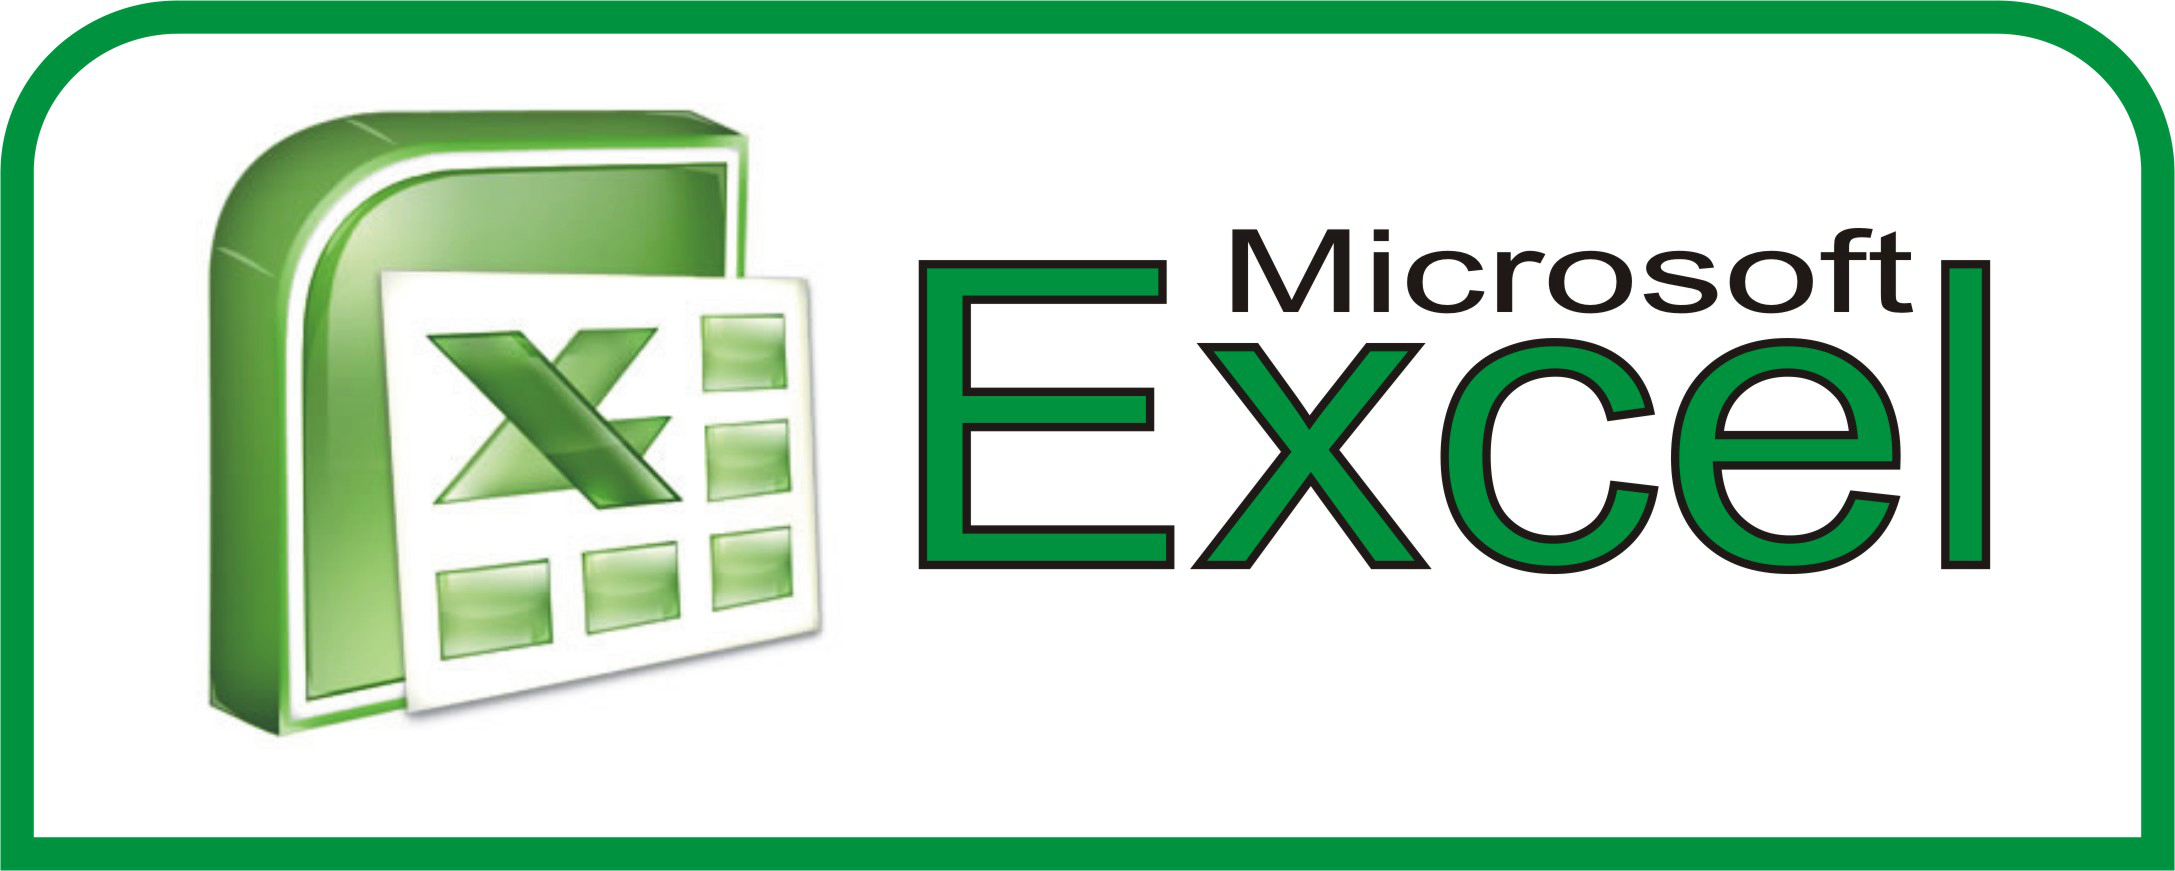 Ediblewildsus  Marvelous  Excel Shortcuts You Probably Didnt Know About  Techdissected With Handsome Insert Excel Besides Excel Function Search Furthermore Word Excel Powerpoint For Mac With Comely Mail Merge Into Excel Also I Excel At Math In Addition Excel Kanban Board And Excel Customize Ribbon As Well As Excel Double Axis Additionally Convert Excel To Database From Techdissectedcom With Ediblewildsus  Handsome  Excel Shortcuts You Probably Didnt Know About  Techdissected With Comely Insert Excel Besides Excel Function Search Furthermore Word Excel Powerpoint For Mac And Marvelous Mail Merge Into Excel Also I Excel At Math In Addition Excel Kanban Board From Techdissectedcom